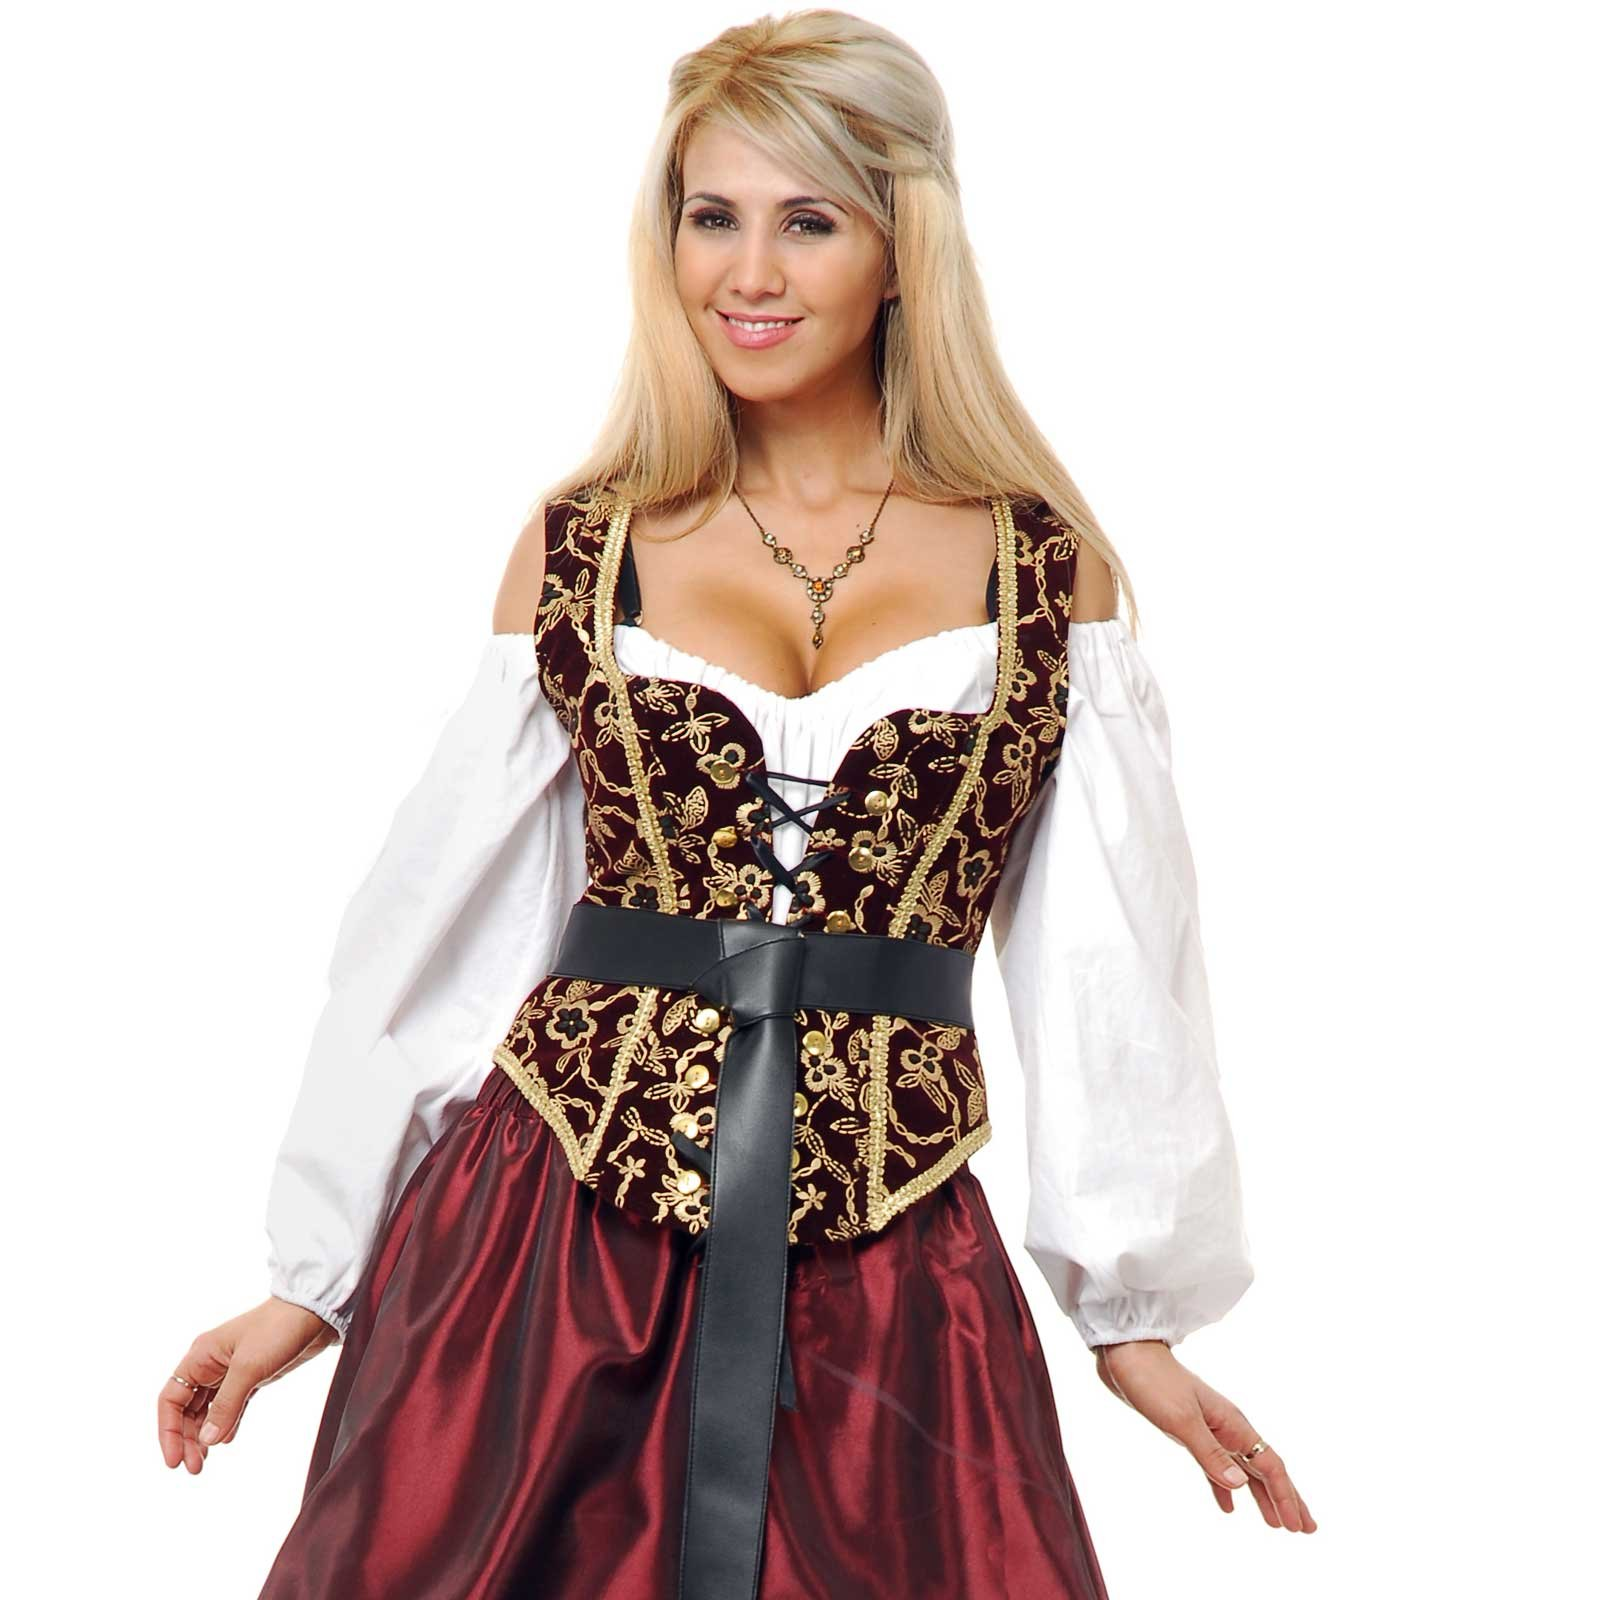 Black and Gold Corset Bodice Adult